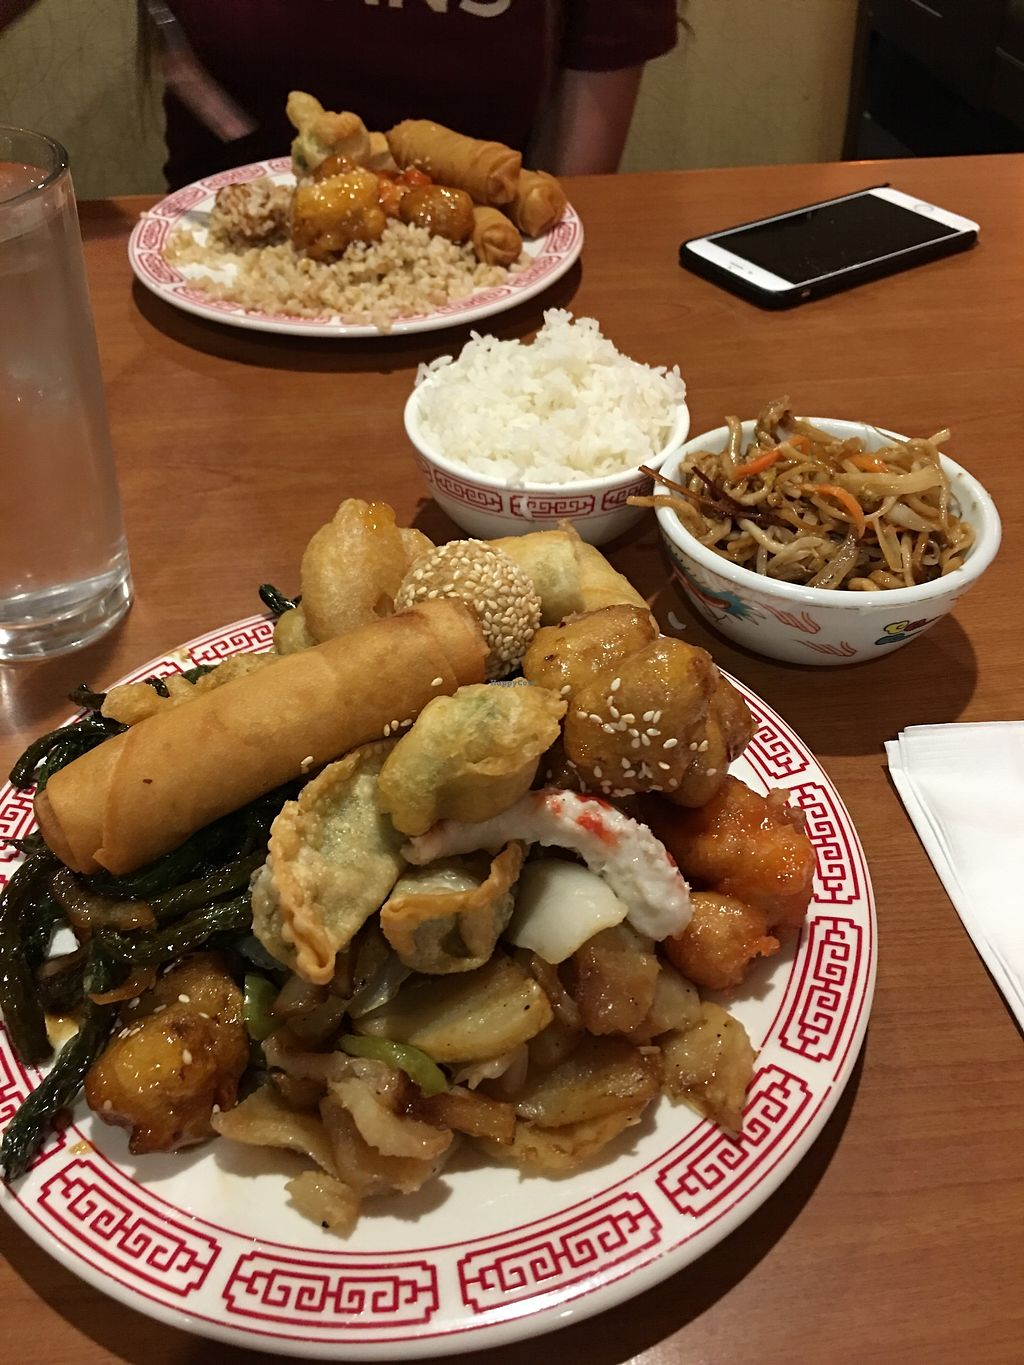 """Photo of Tsing Tao  by <a href=""""/members/profile/JaydaTaylor"""">JaydaTaylor</a> <br/>All vegan buffet plate 3/3 <br/> October 18, 2017  - <a href='/contact/abuse/image/6253/316439'>Report</a>"""